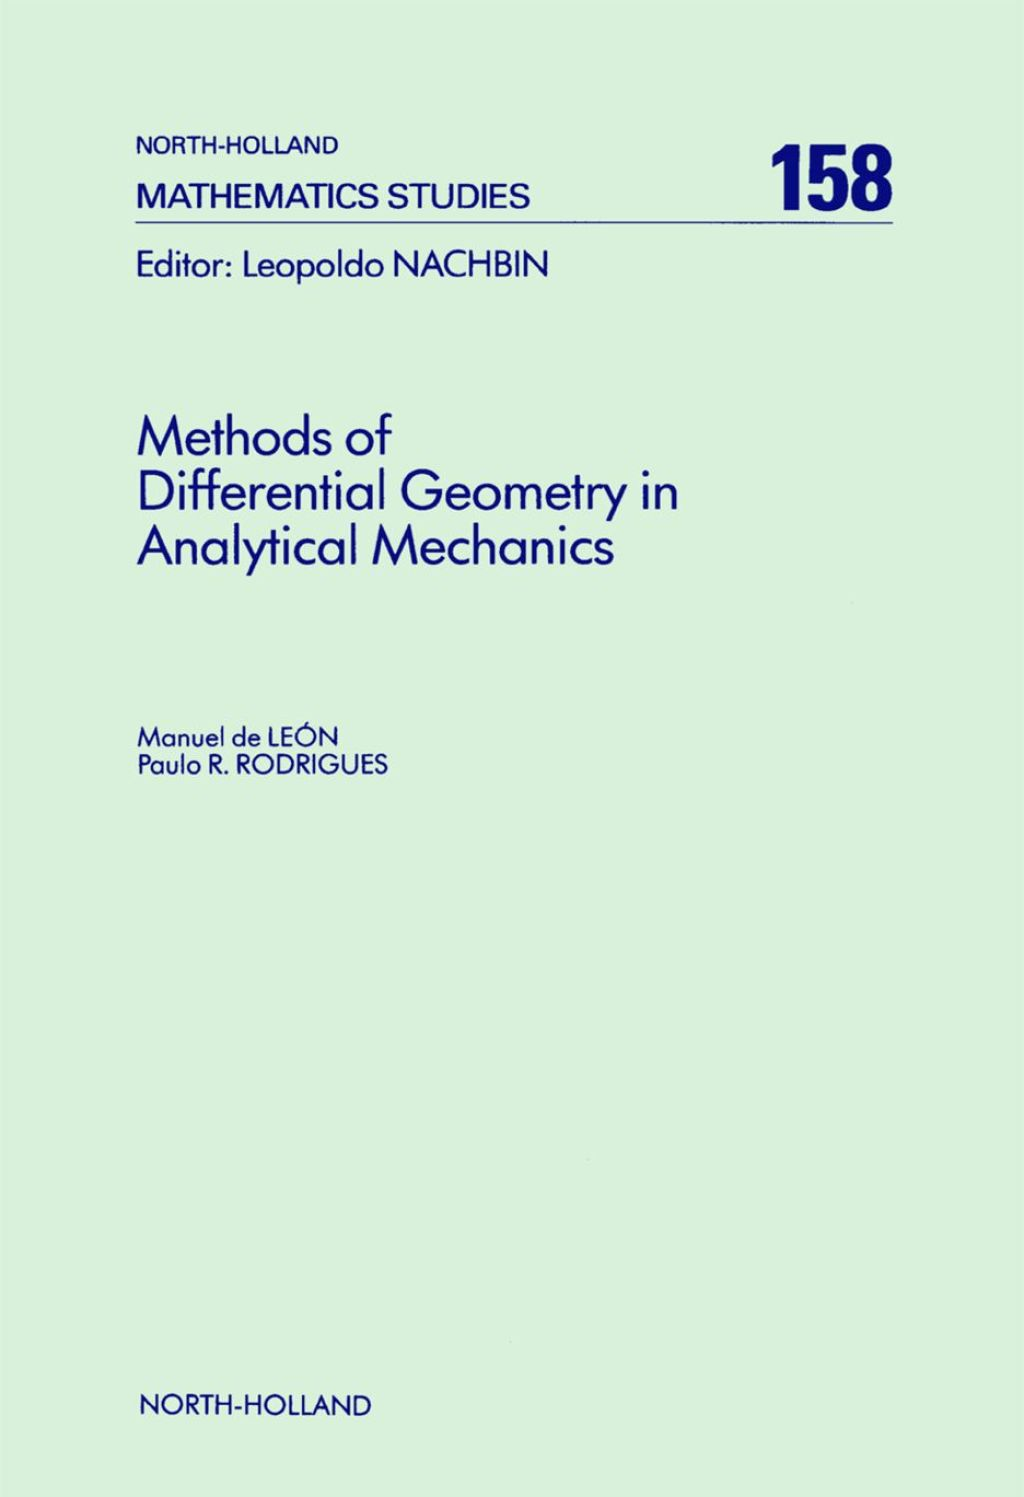 Methods of Differential Geometry in Analytical Mechanics (ebook) eBooks